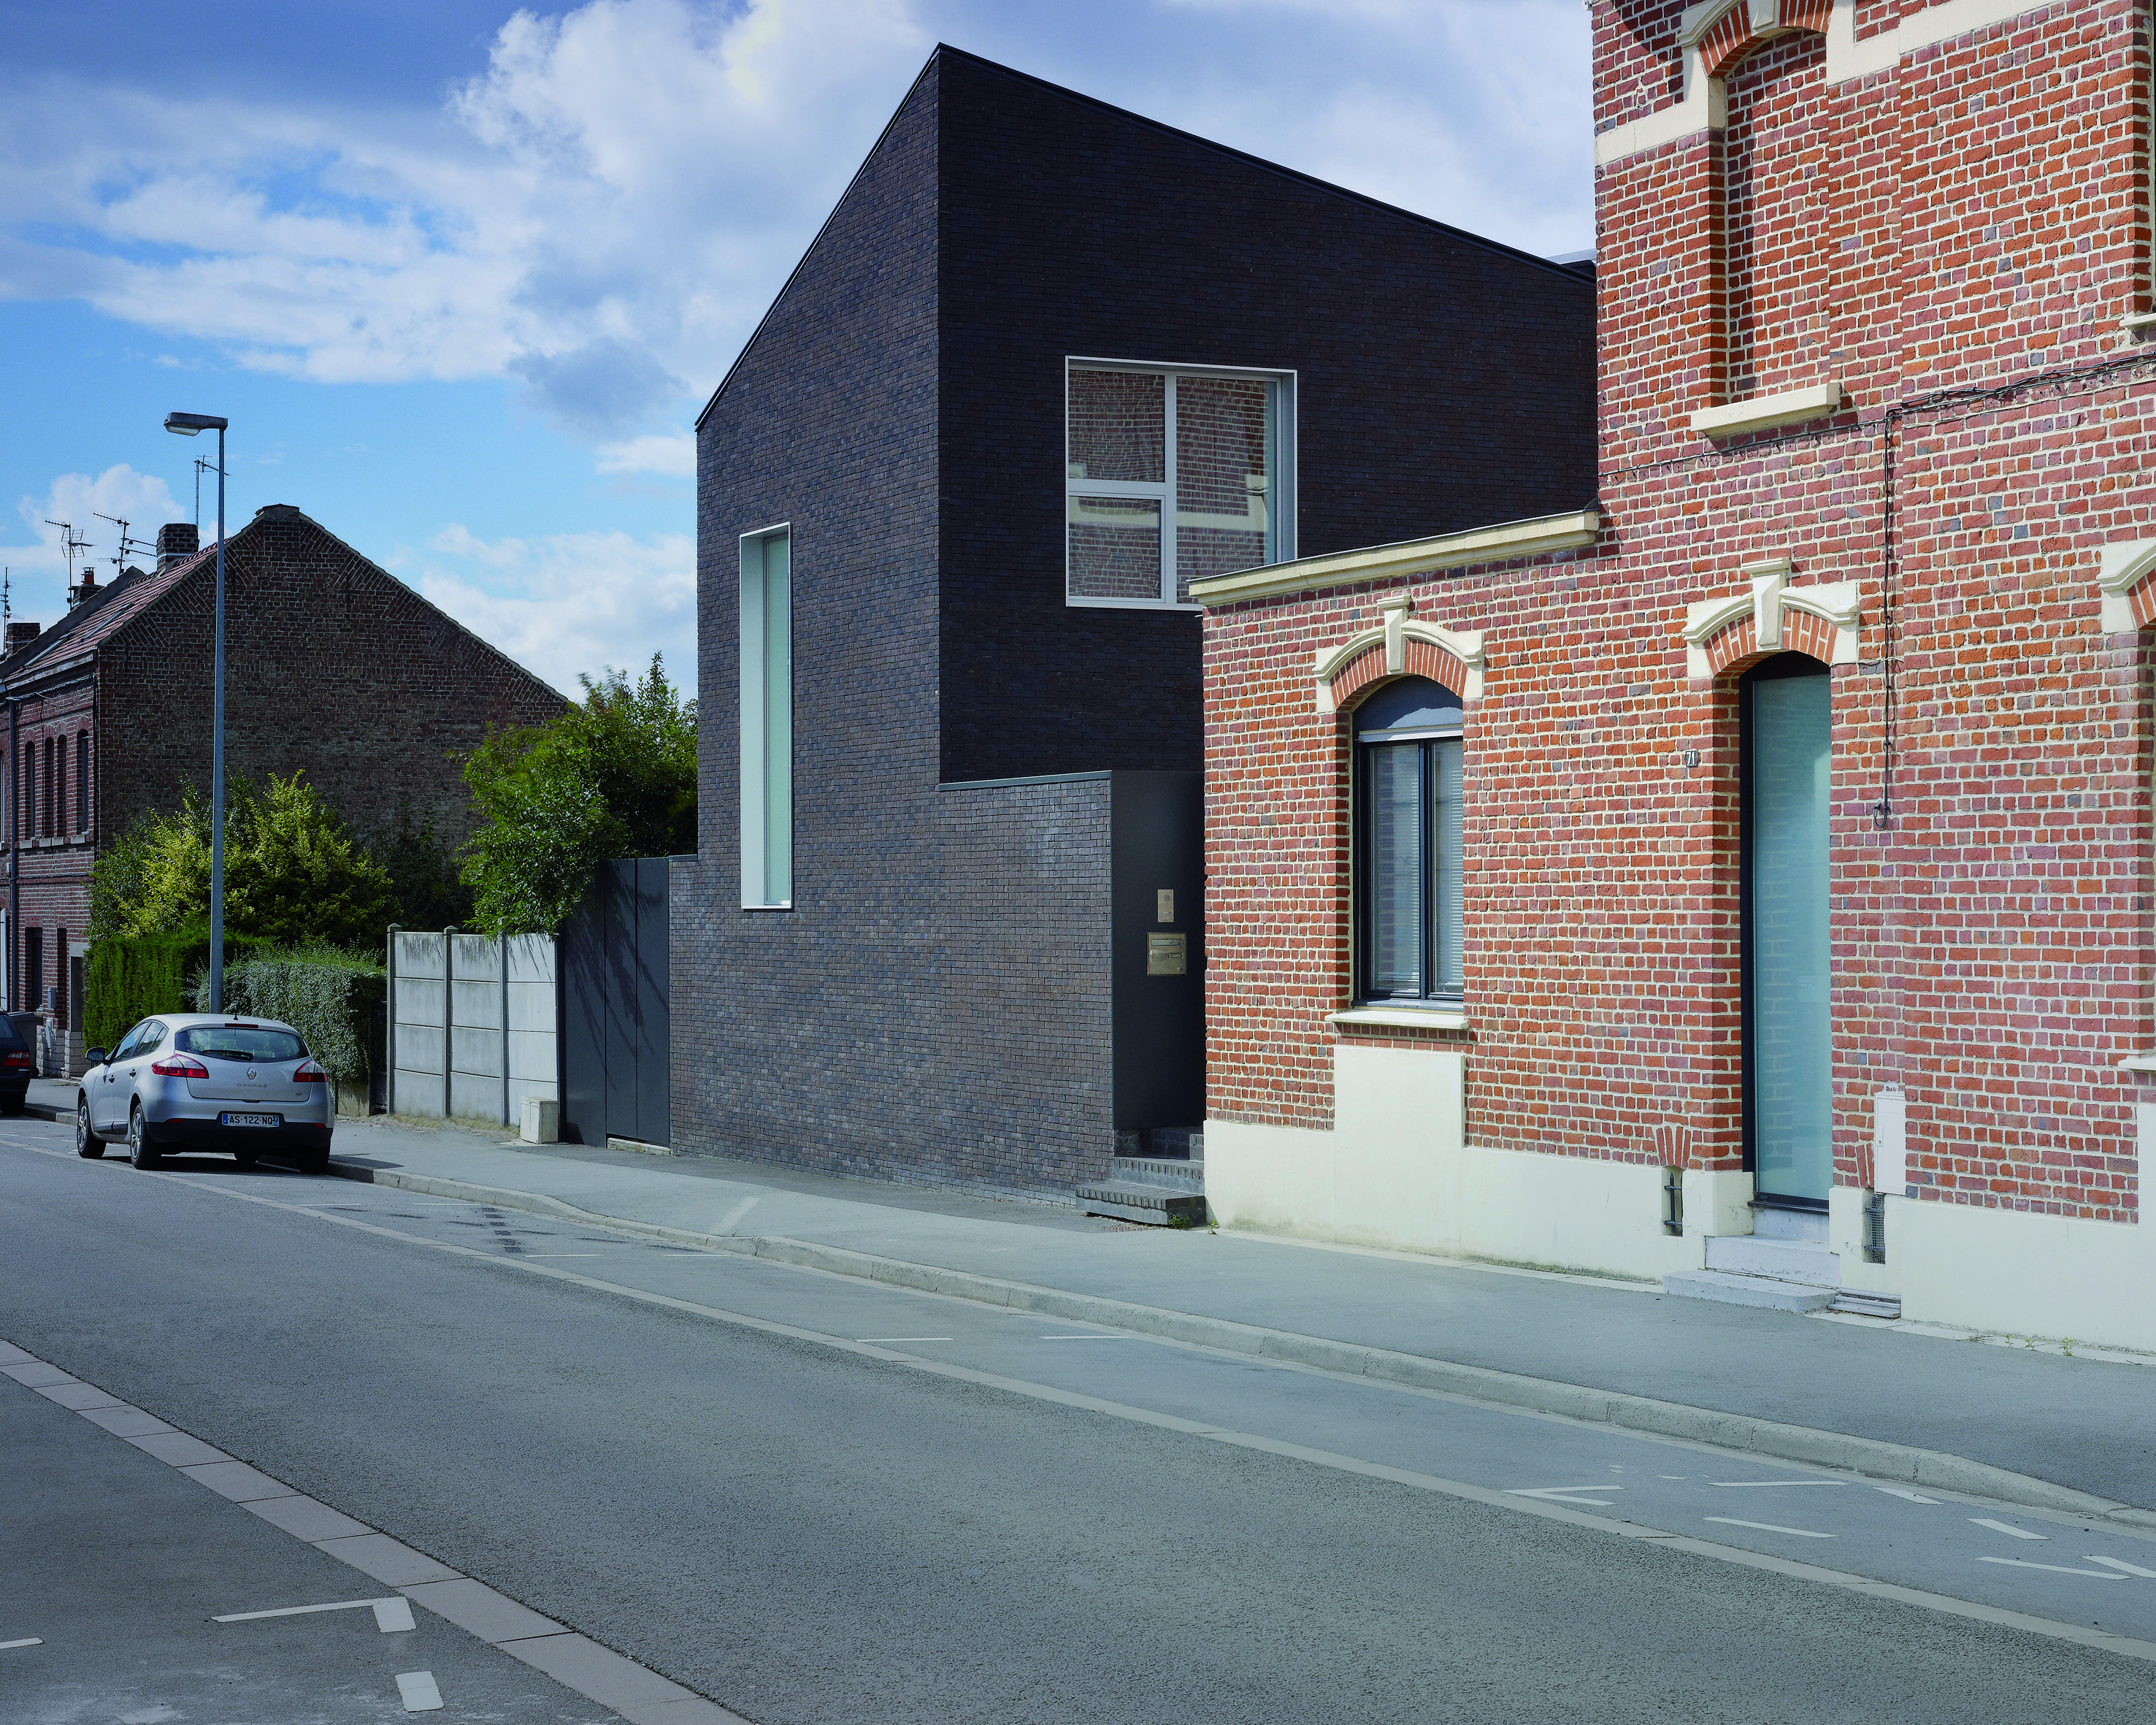 French Architect Emmanuelle Weiss Has Added A Contrasting Dark Brick